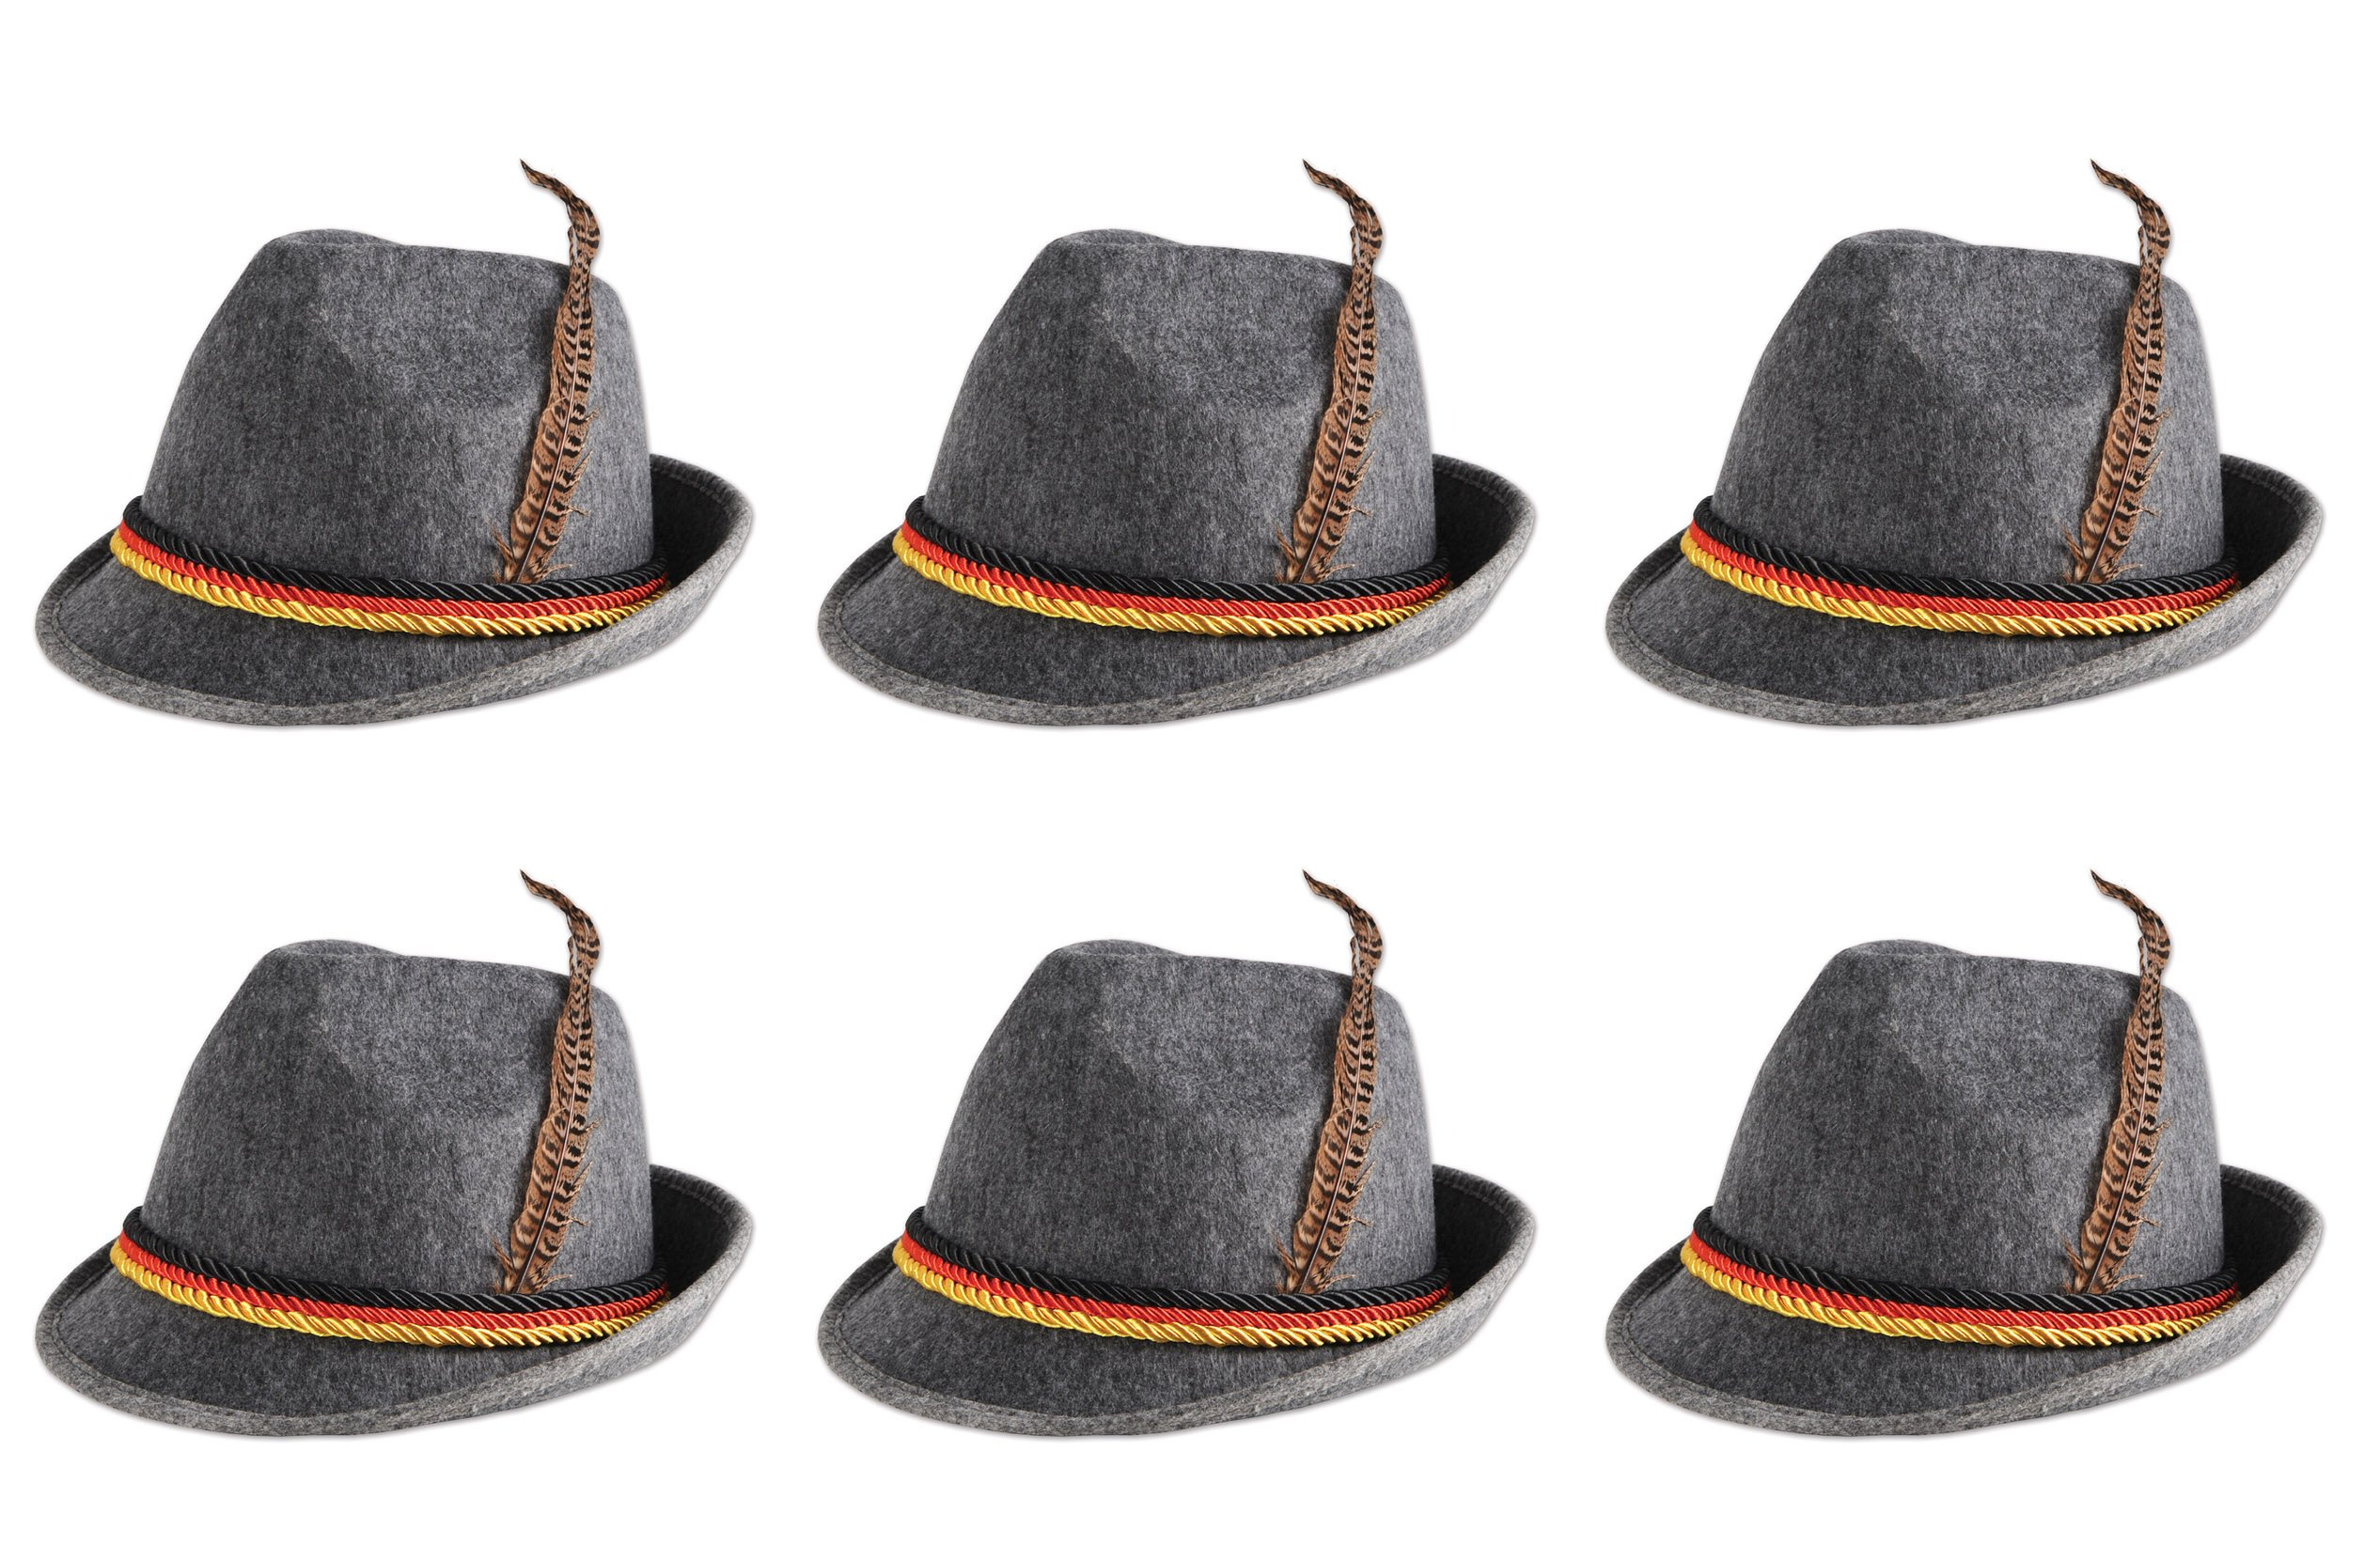 Beistle 60243 6-Pack German Alpine Hats